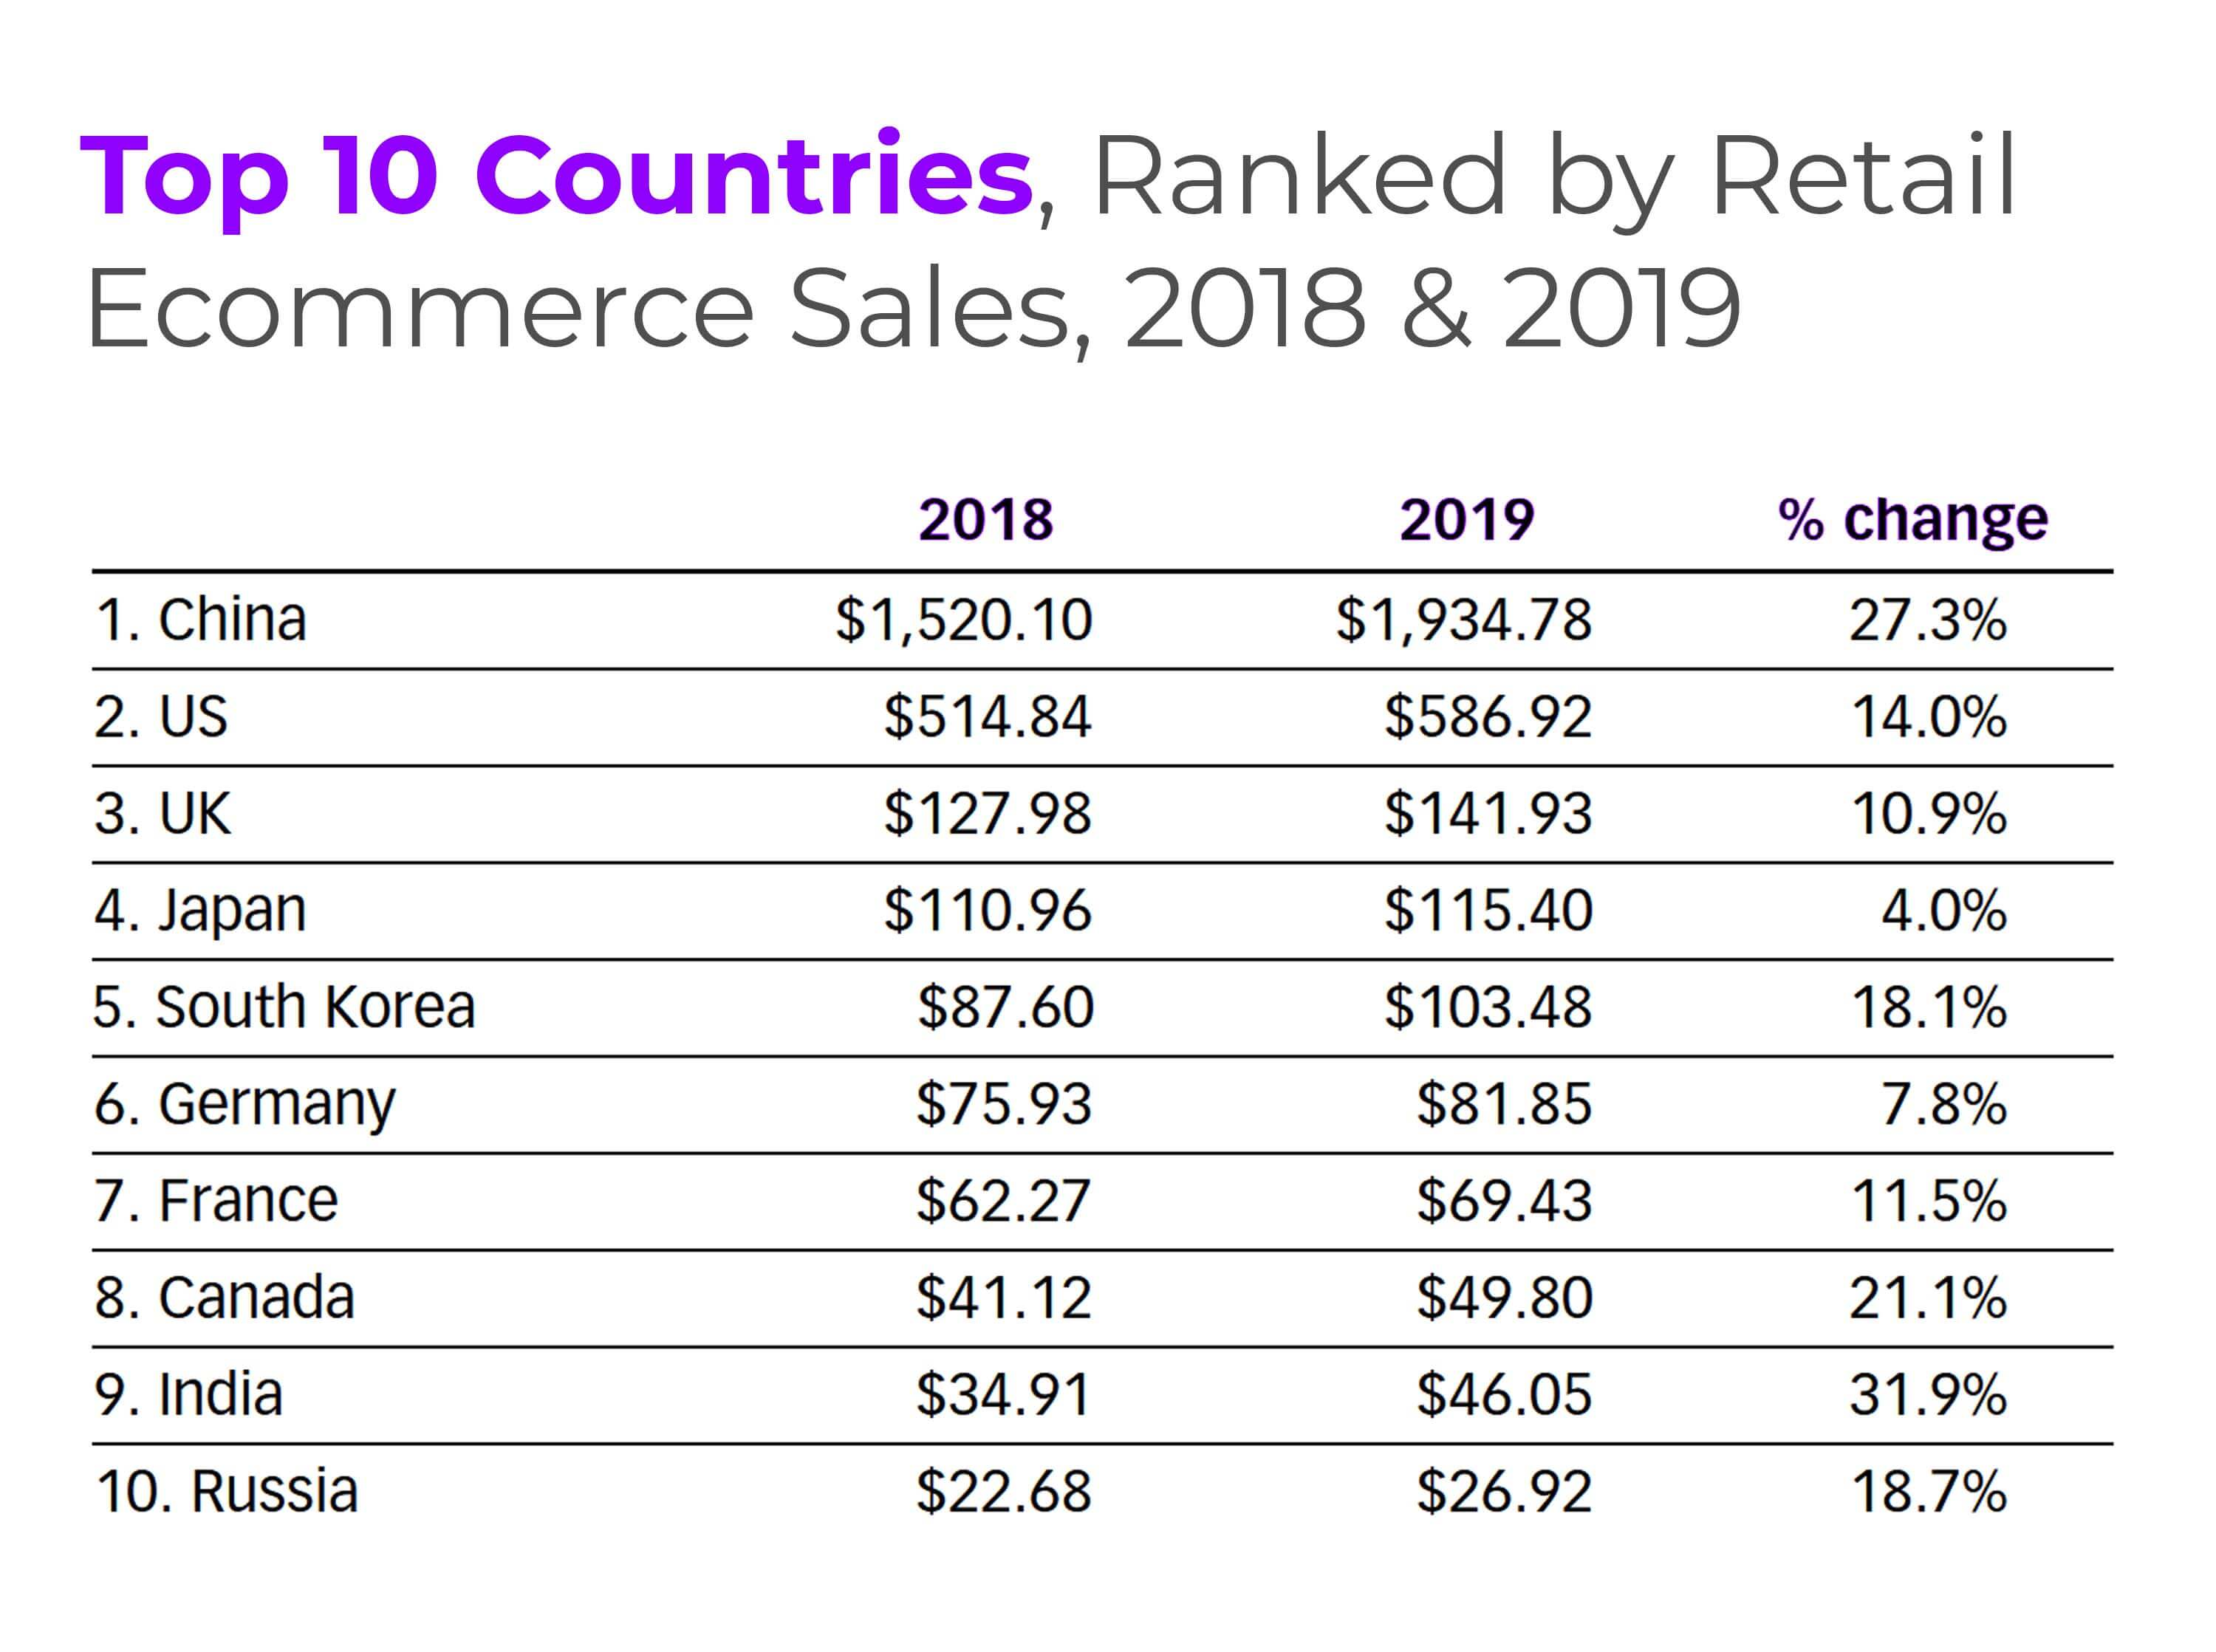 Ranking of top 10 countries by e-commerce and retail sales as per 2018 & 2019